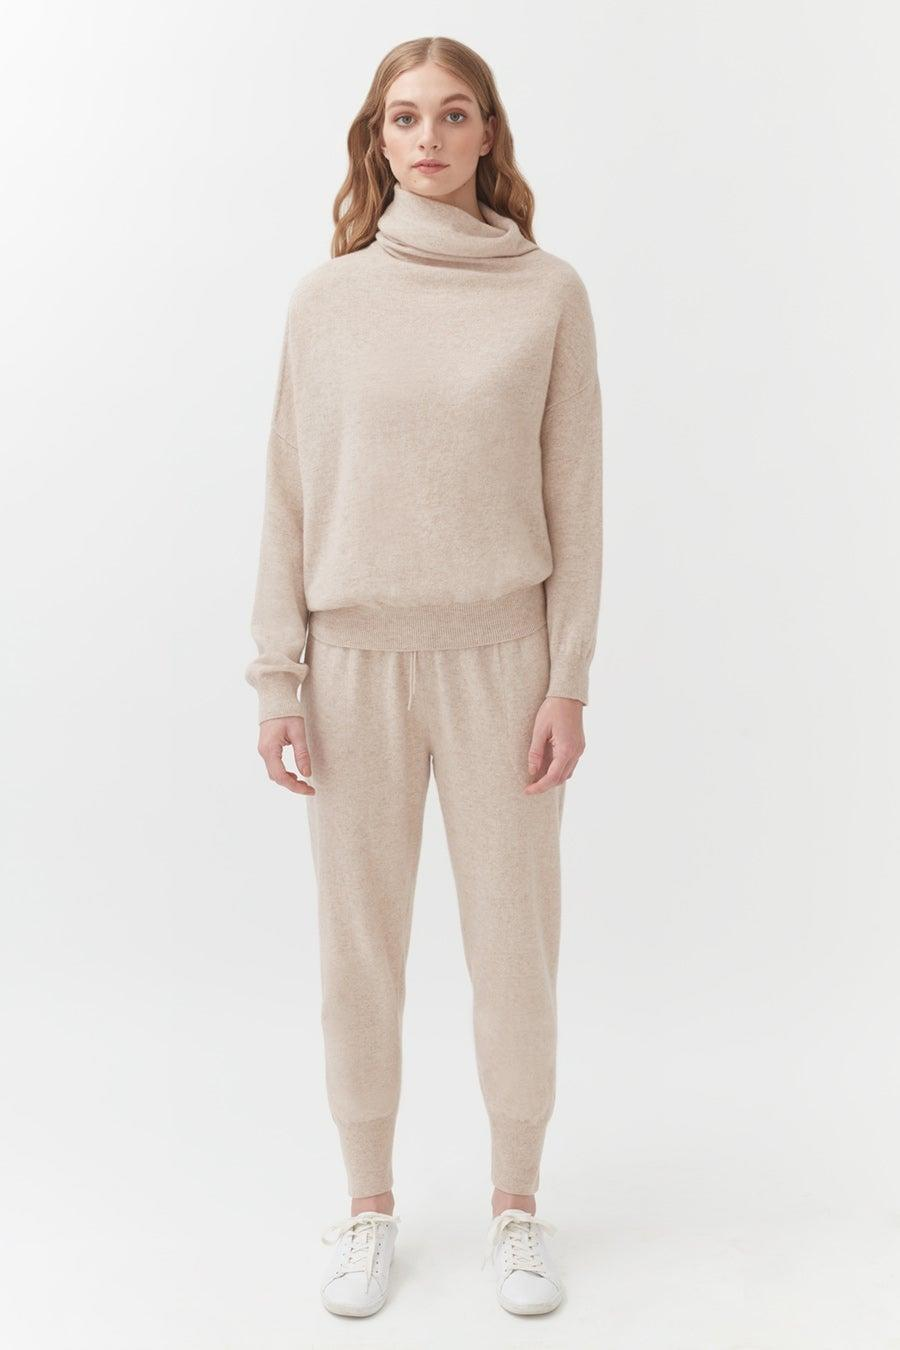 "<h2>Cuyana Cashmere Tapered Pant</h2><br>This premium brand is known for its luxury basics, so we knew they'd deliver in the cashmere-pant category. This heavenly oat-colored pair is made in a vertically integrated Italian factory from Oeko-Tex certified fiber.<br><br><strong>Cuyana</strong> Cashmere Tapered Pant, $, available at <a href=""https://go.skimresources.com/?id=30283X879131&url=https%3A%2F%2Fwww.cuyana.com%2Fcashmere-tapered-pant.html%23beige"" rel=""nofollow noopener"" target=""_blank"" data-ylk=""slk:Cuyana"" class=""link rapid-noclick-resp"">Cuyana</a>"